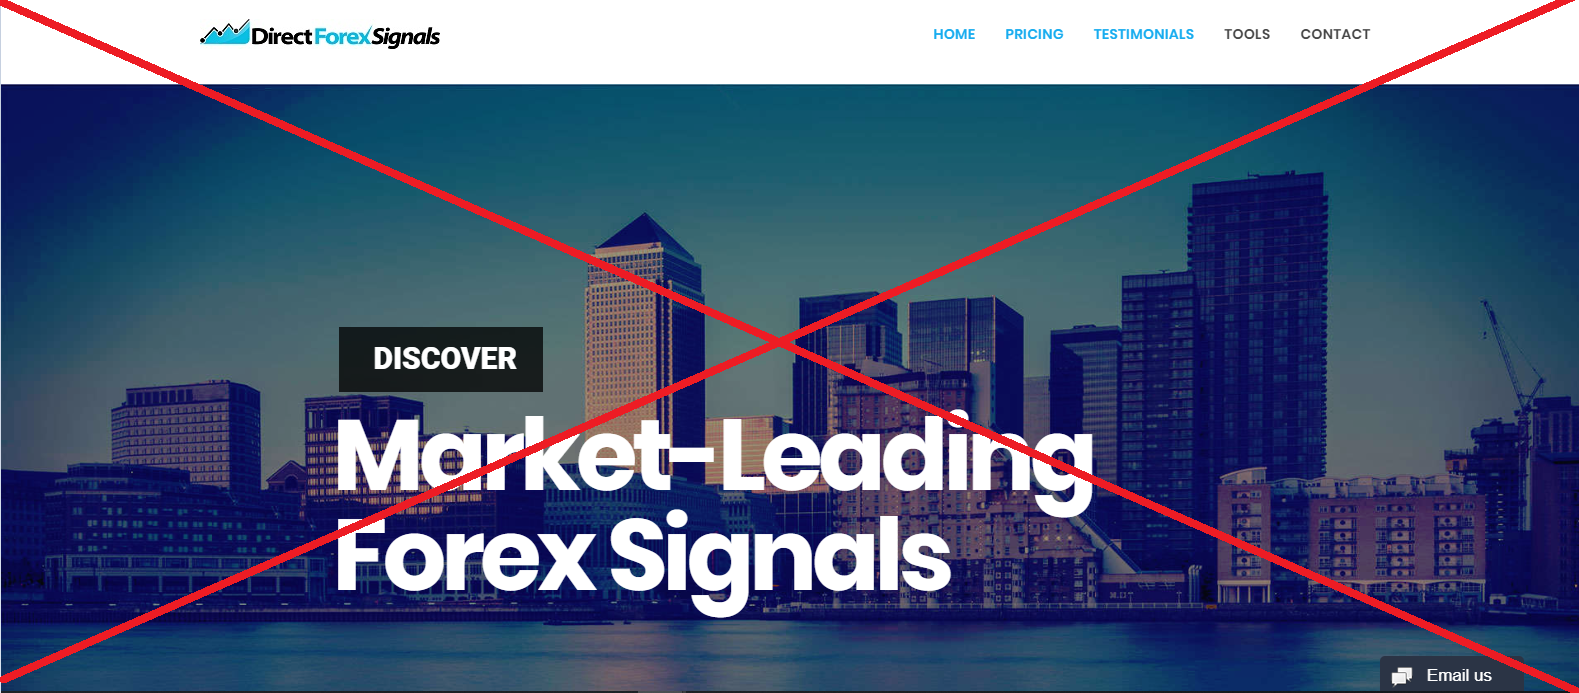 Daily forex signals uk review